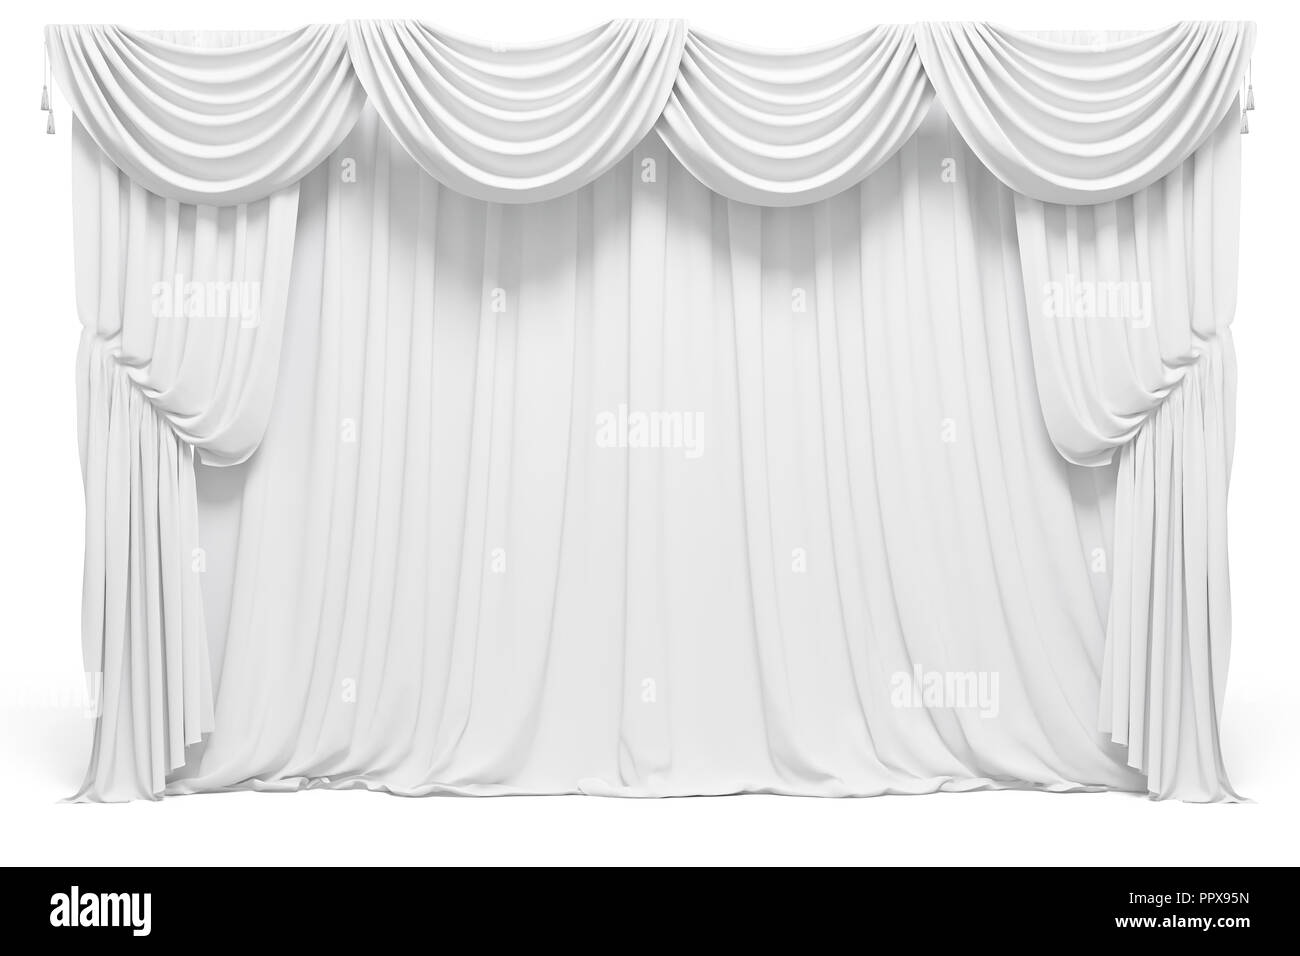 3d curtains on white background Stock Photo: 220624817 - Alamy